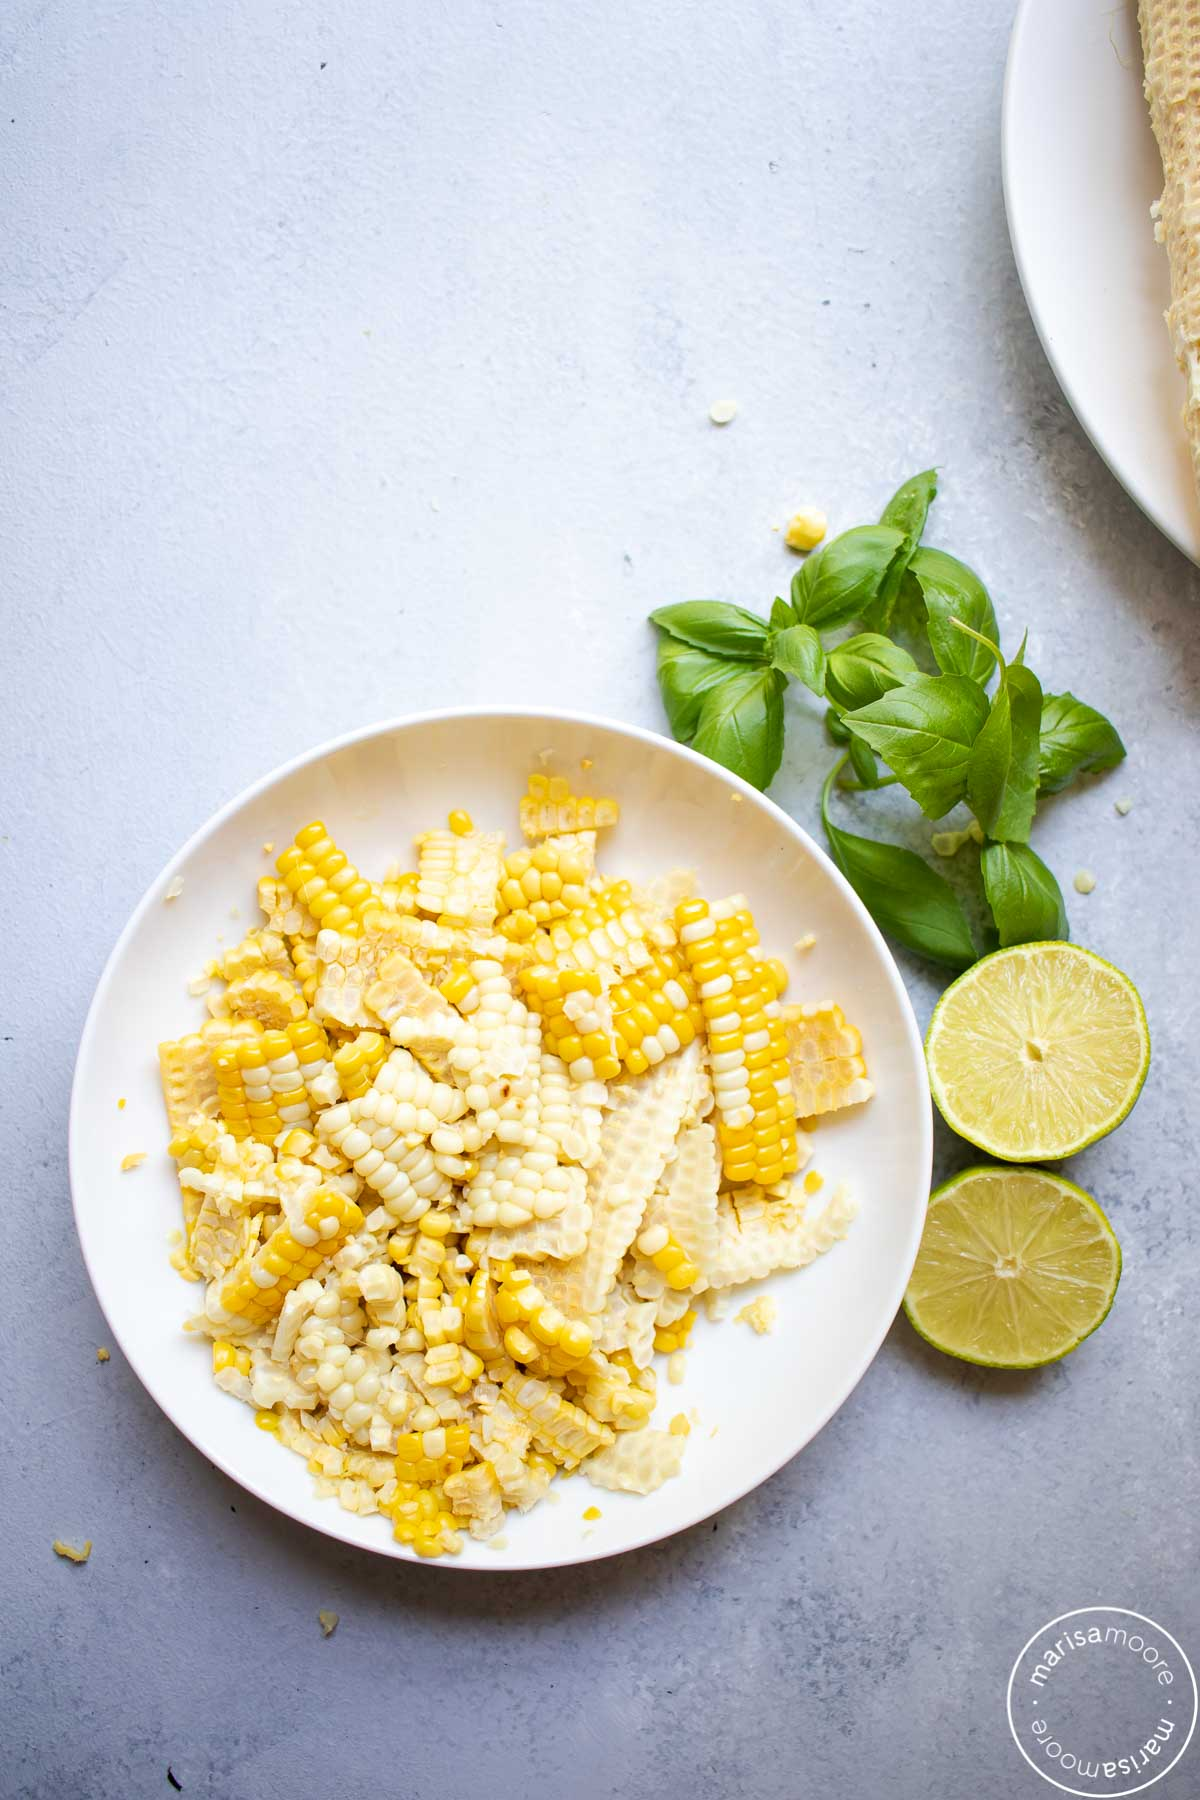 white and yellow corn in a bowl with basil and limes on the side